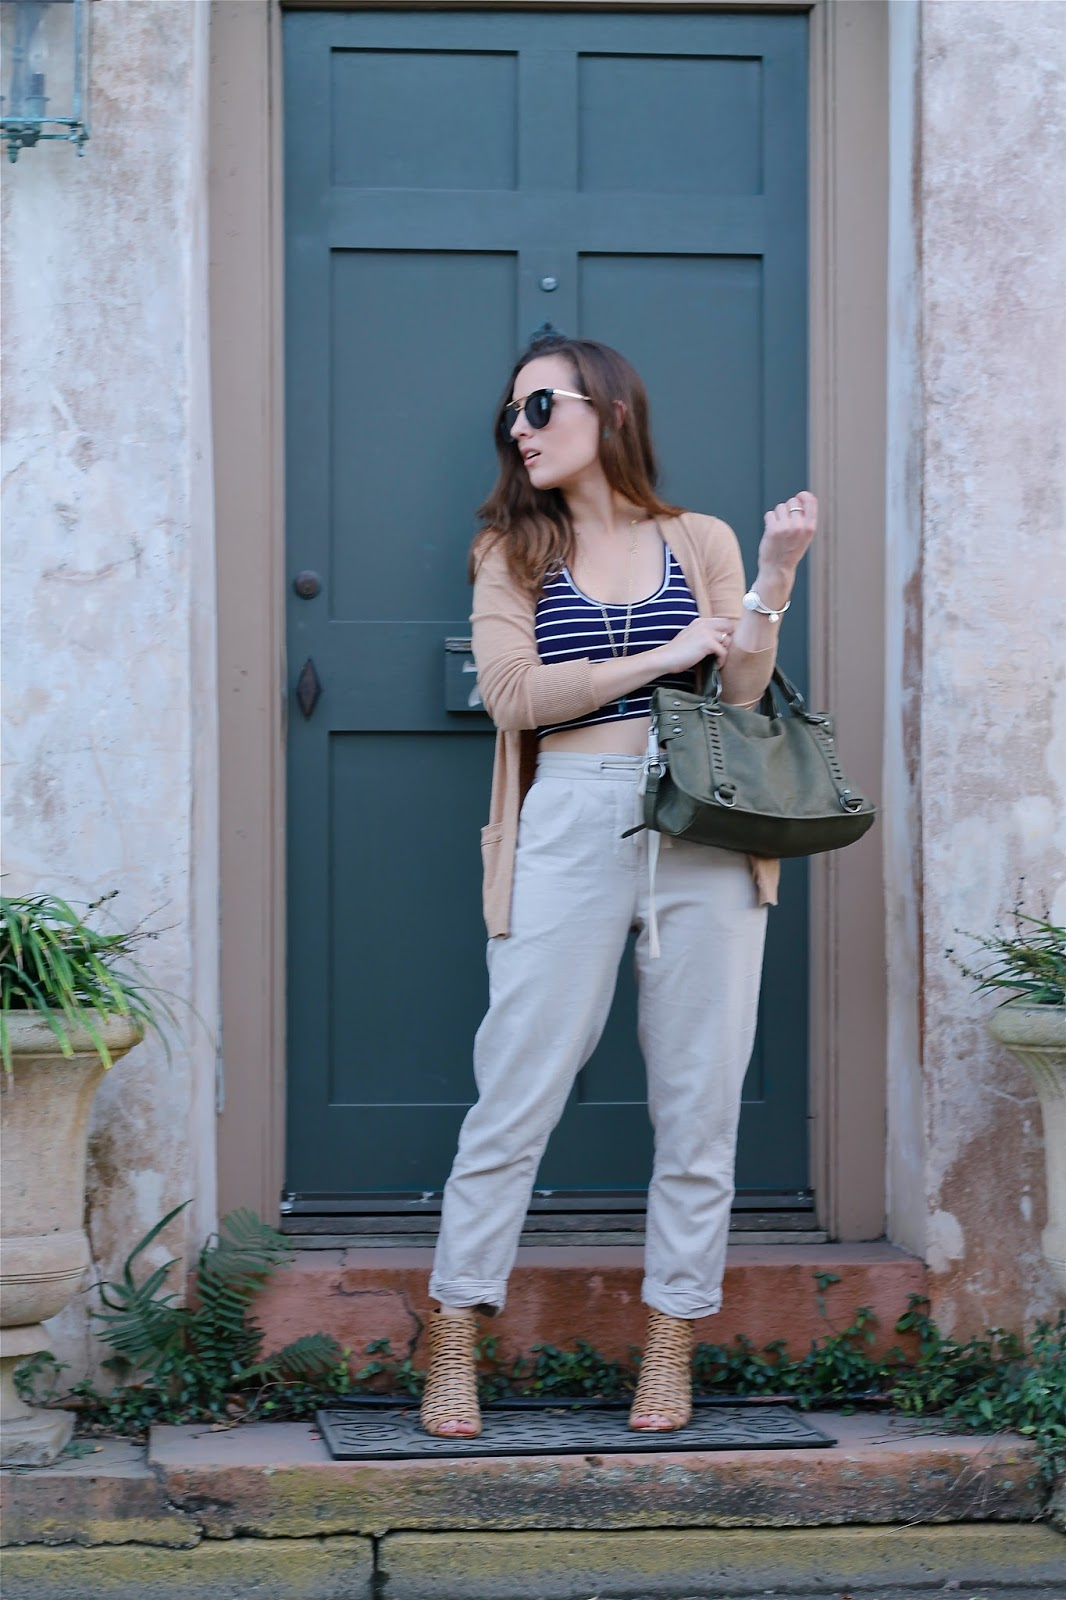 capsule blogger, capsule wardrobe, Miami fashion blogger, New York fashion blogger, New York style, Miami style, fashion blog, style blog, outfit ideas